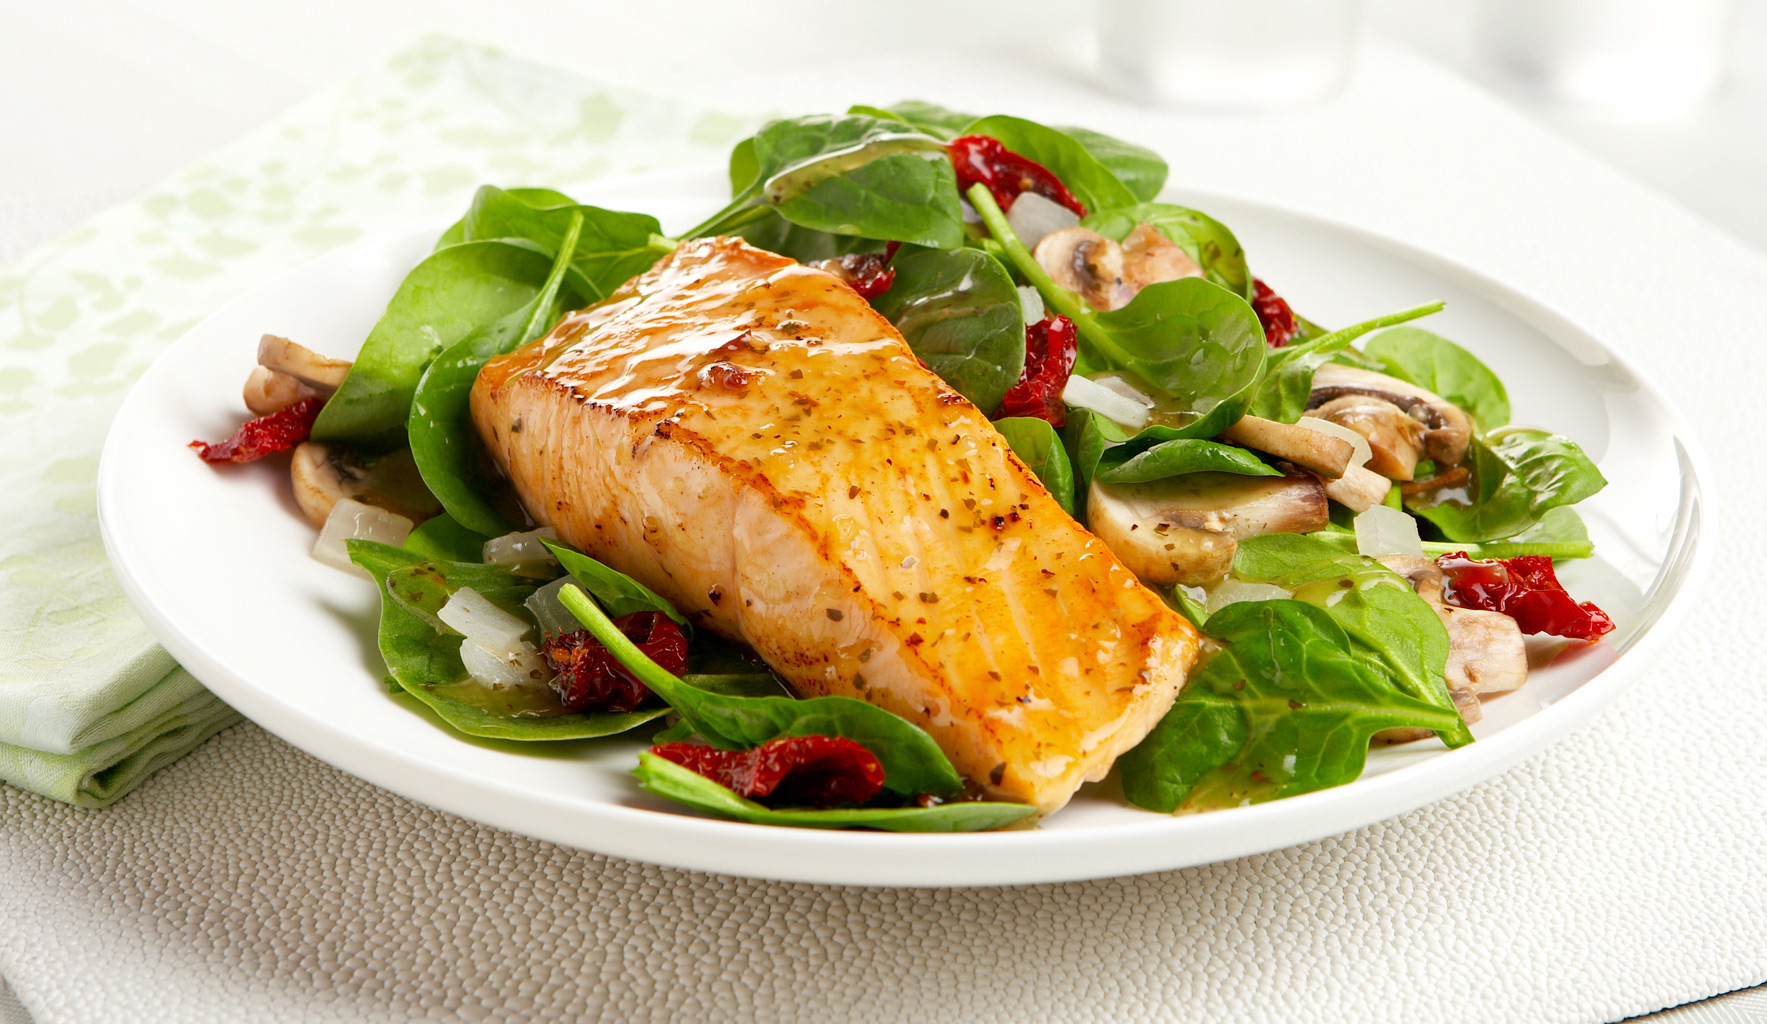 Broil Salmon on Greens